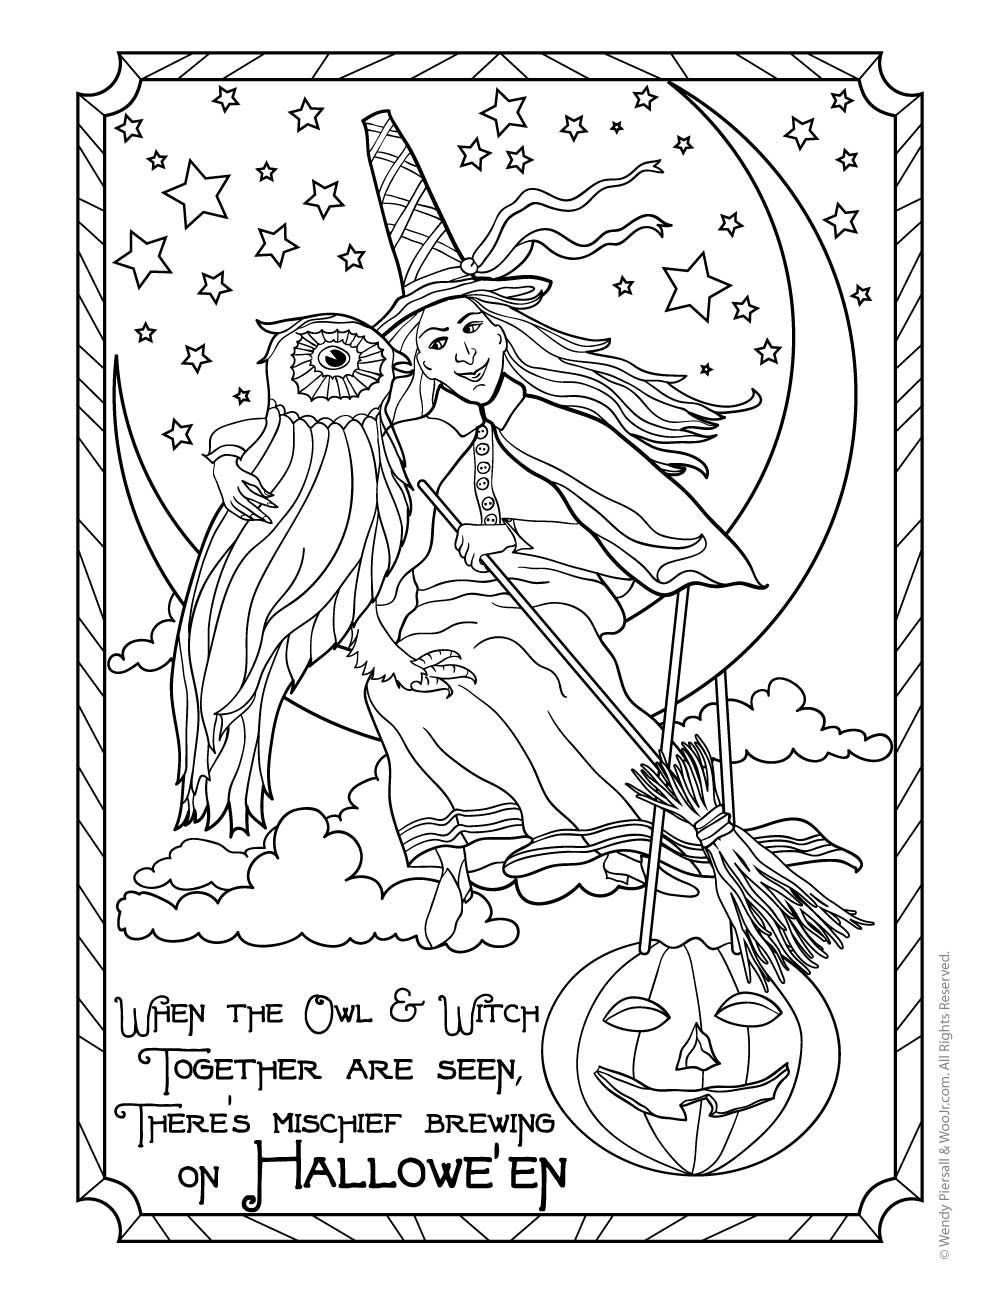 Halloween Coloring Sheets For Adults Witch And Owl Vintage Halloween Postcard Coloring Page W In 2020 Halloween Coloring Sheets Witch Coloring Pages Owl Coloring Pages